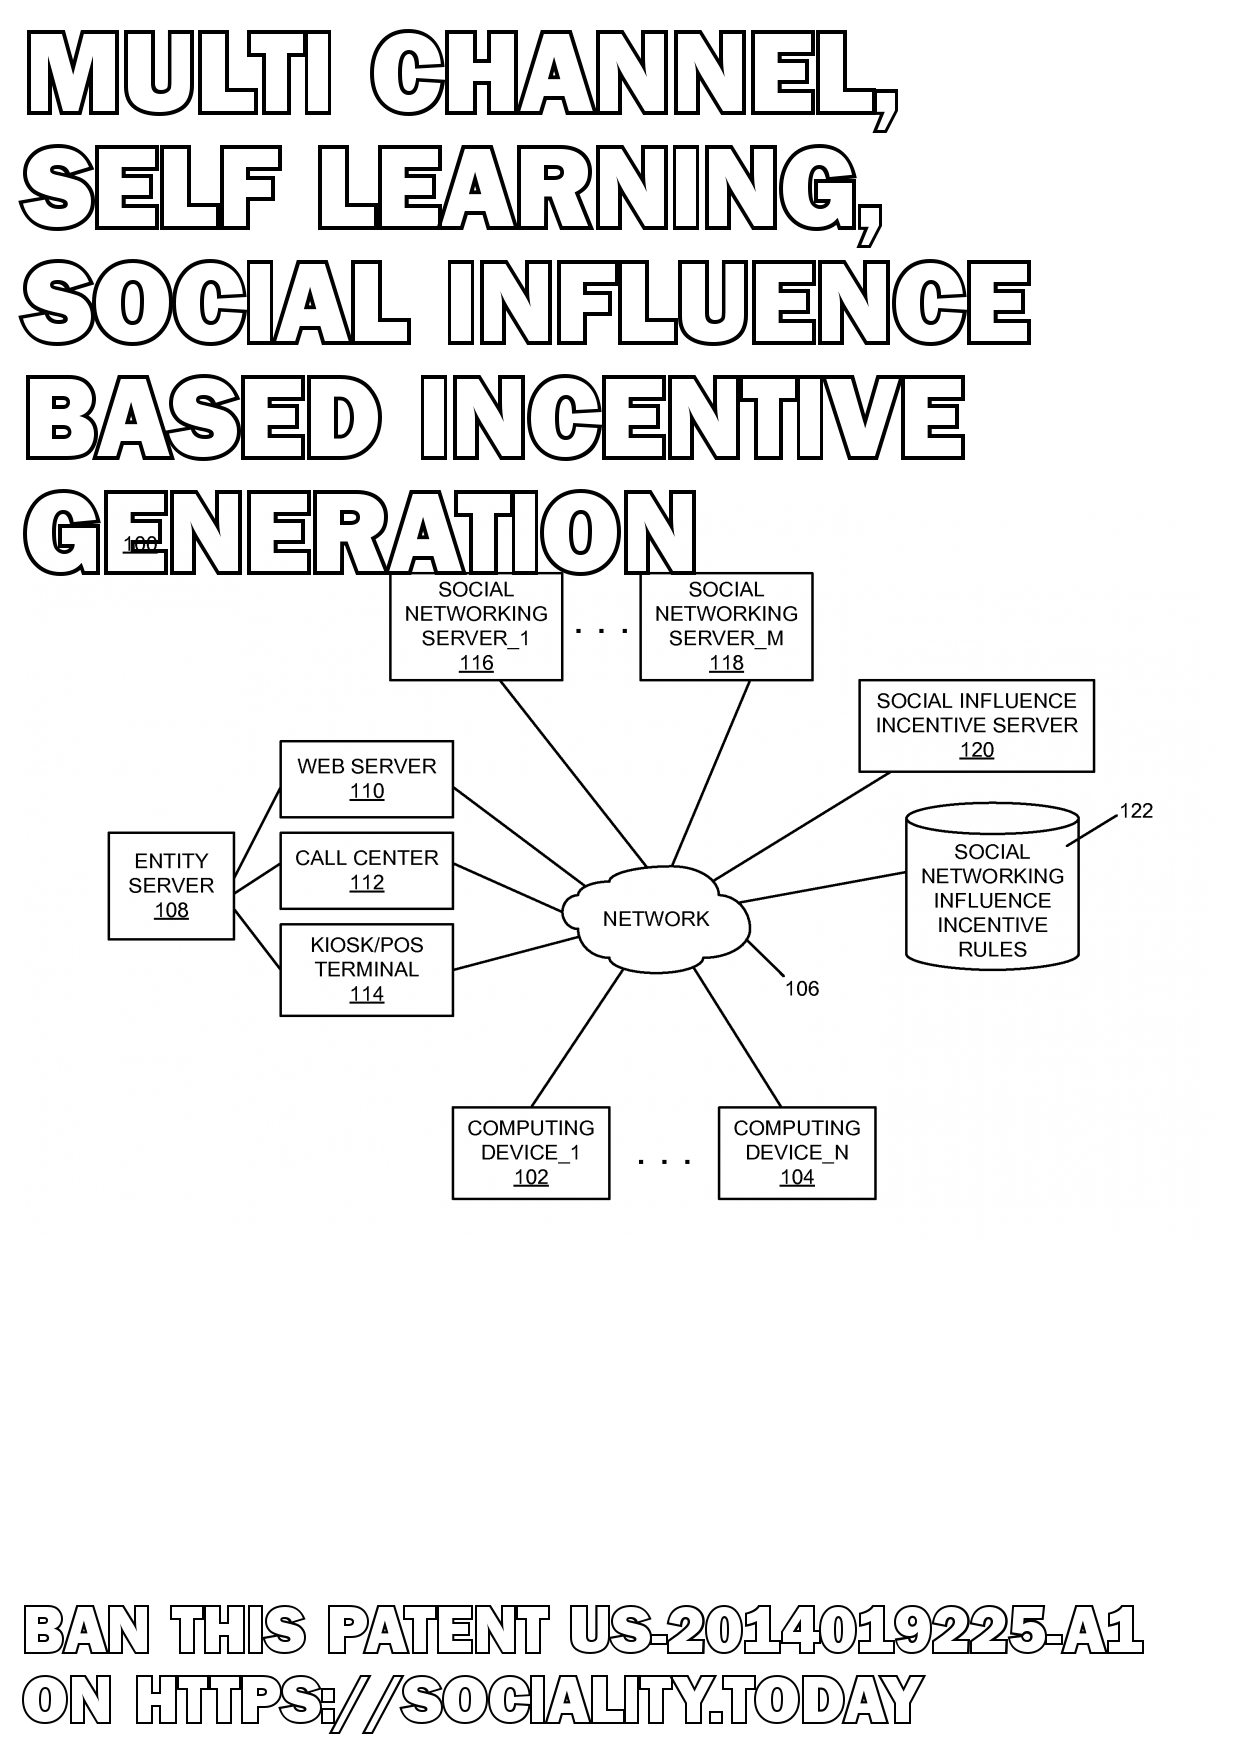 Multi-channel, self-learning, social influence-based incentive generation  - US-2014019225-A1